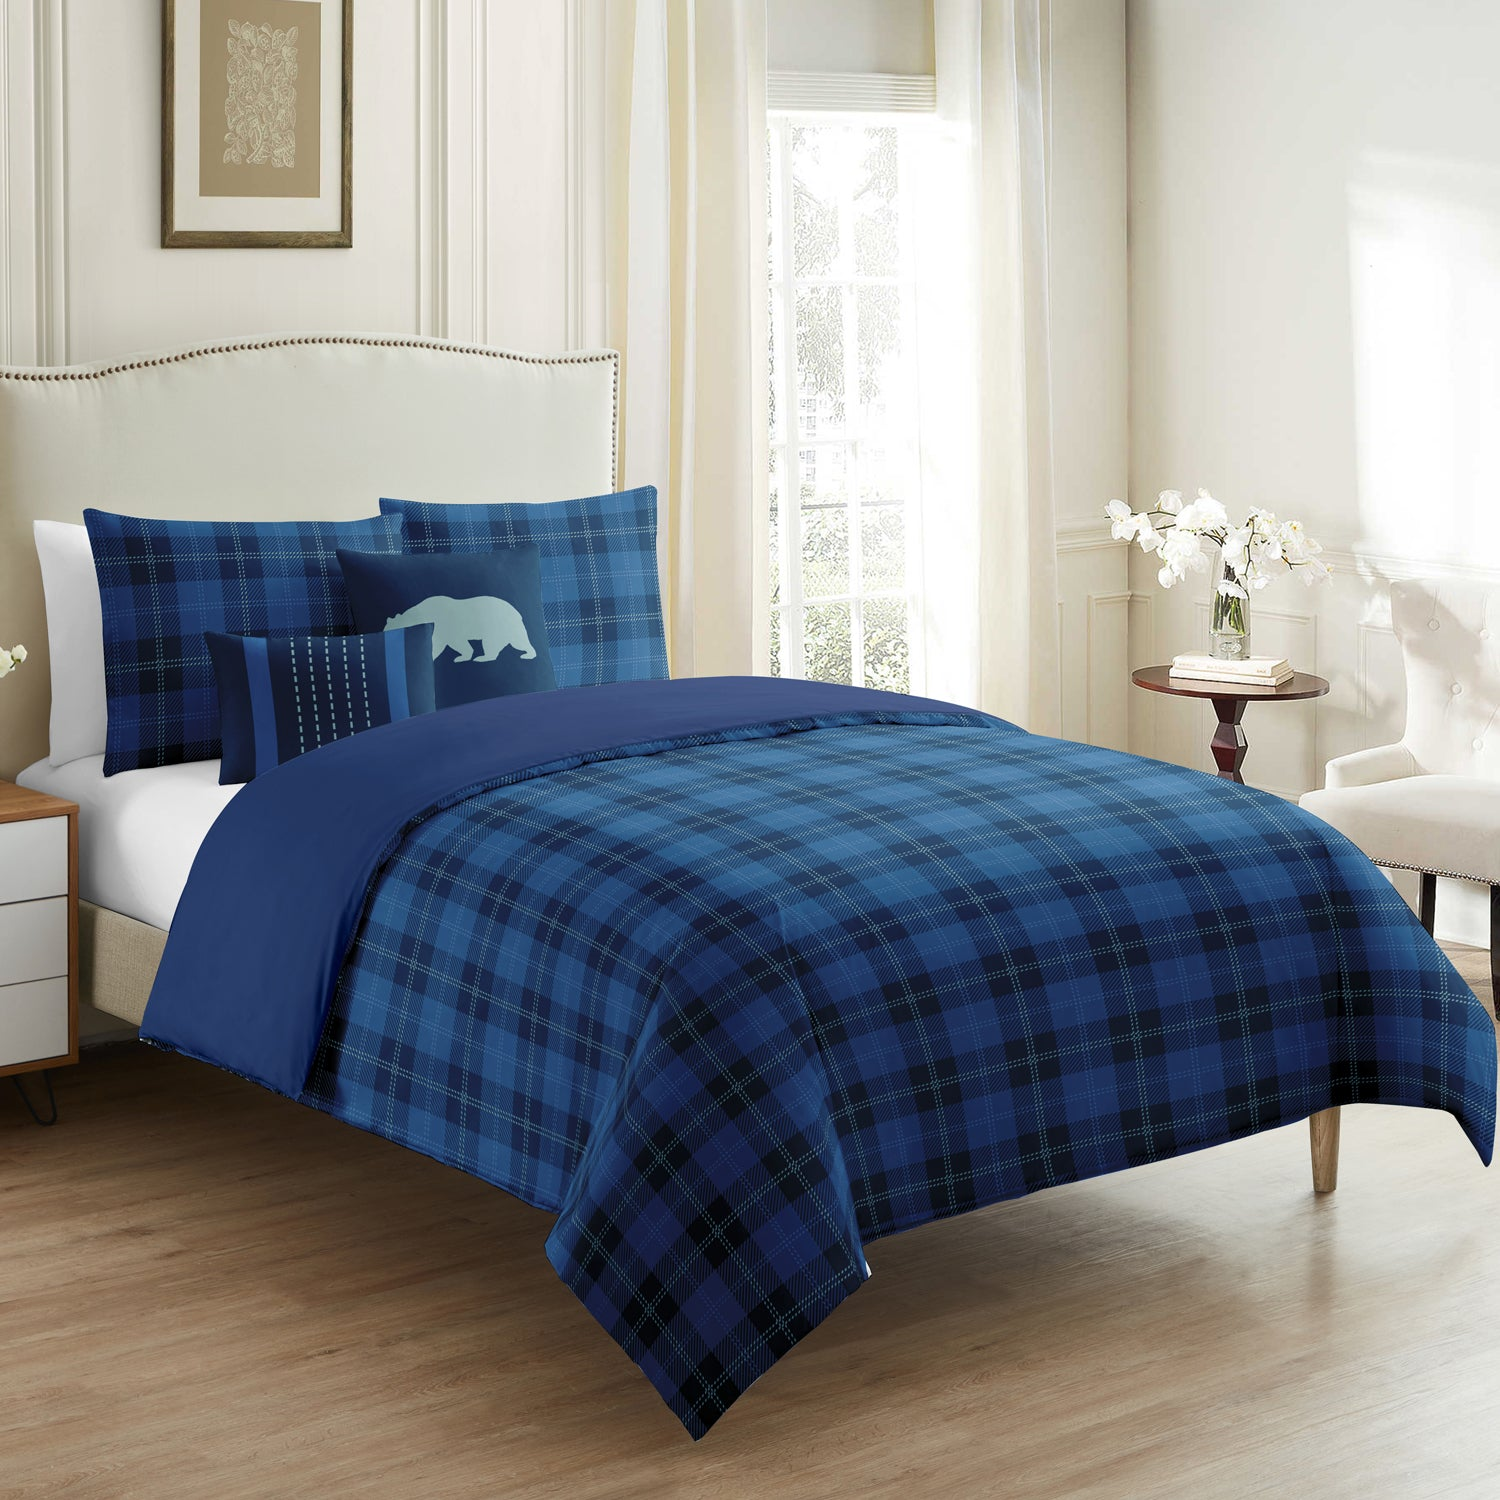 Scottish Blue Plaid 5 Pieces Duvet Cover Set - Merrylife